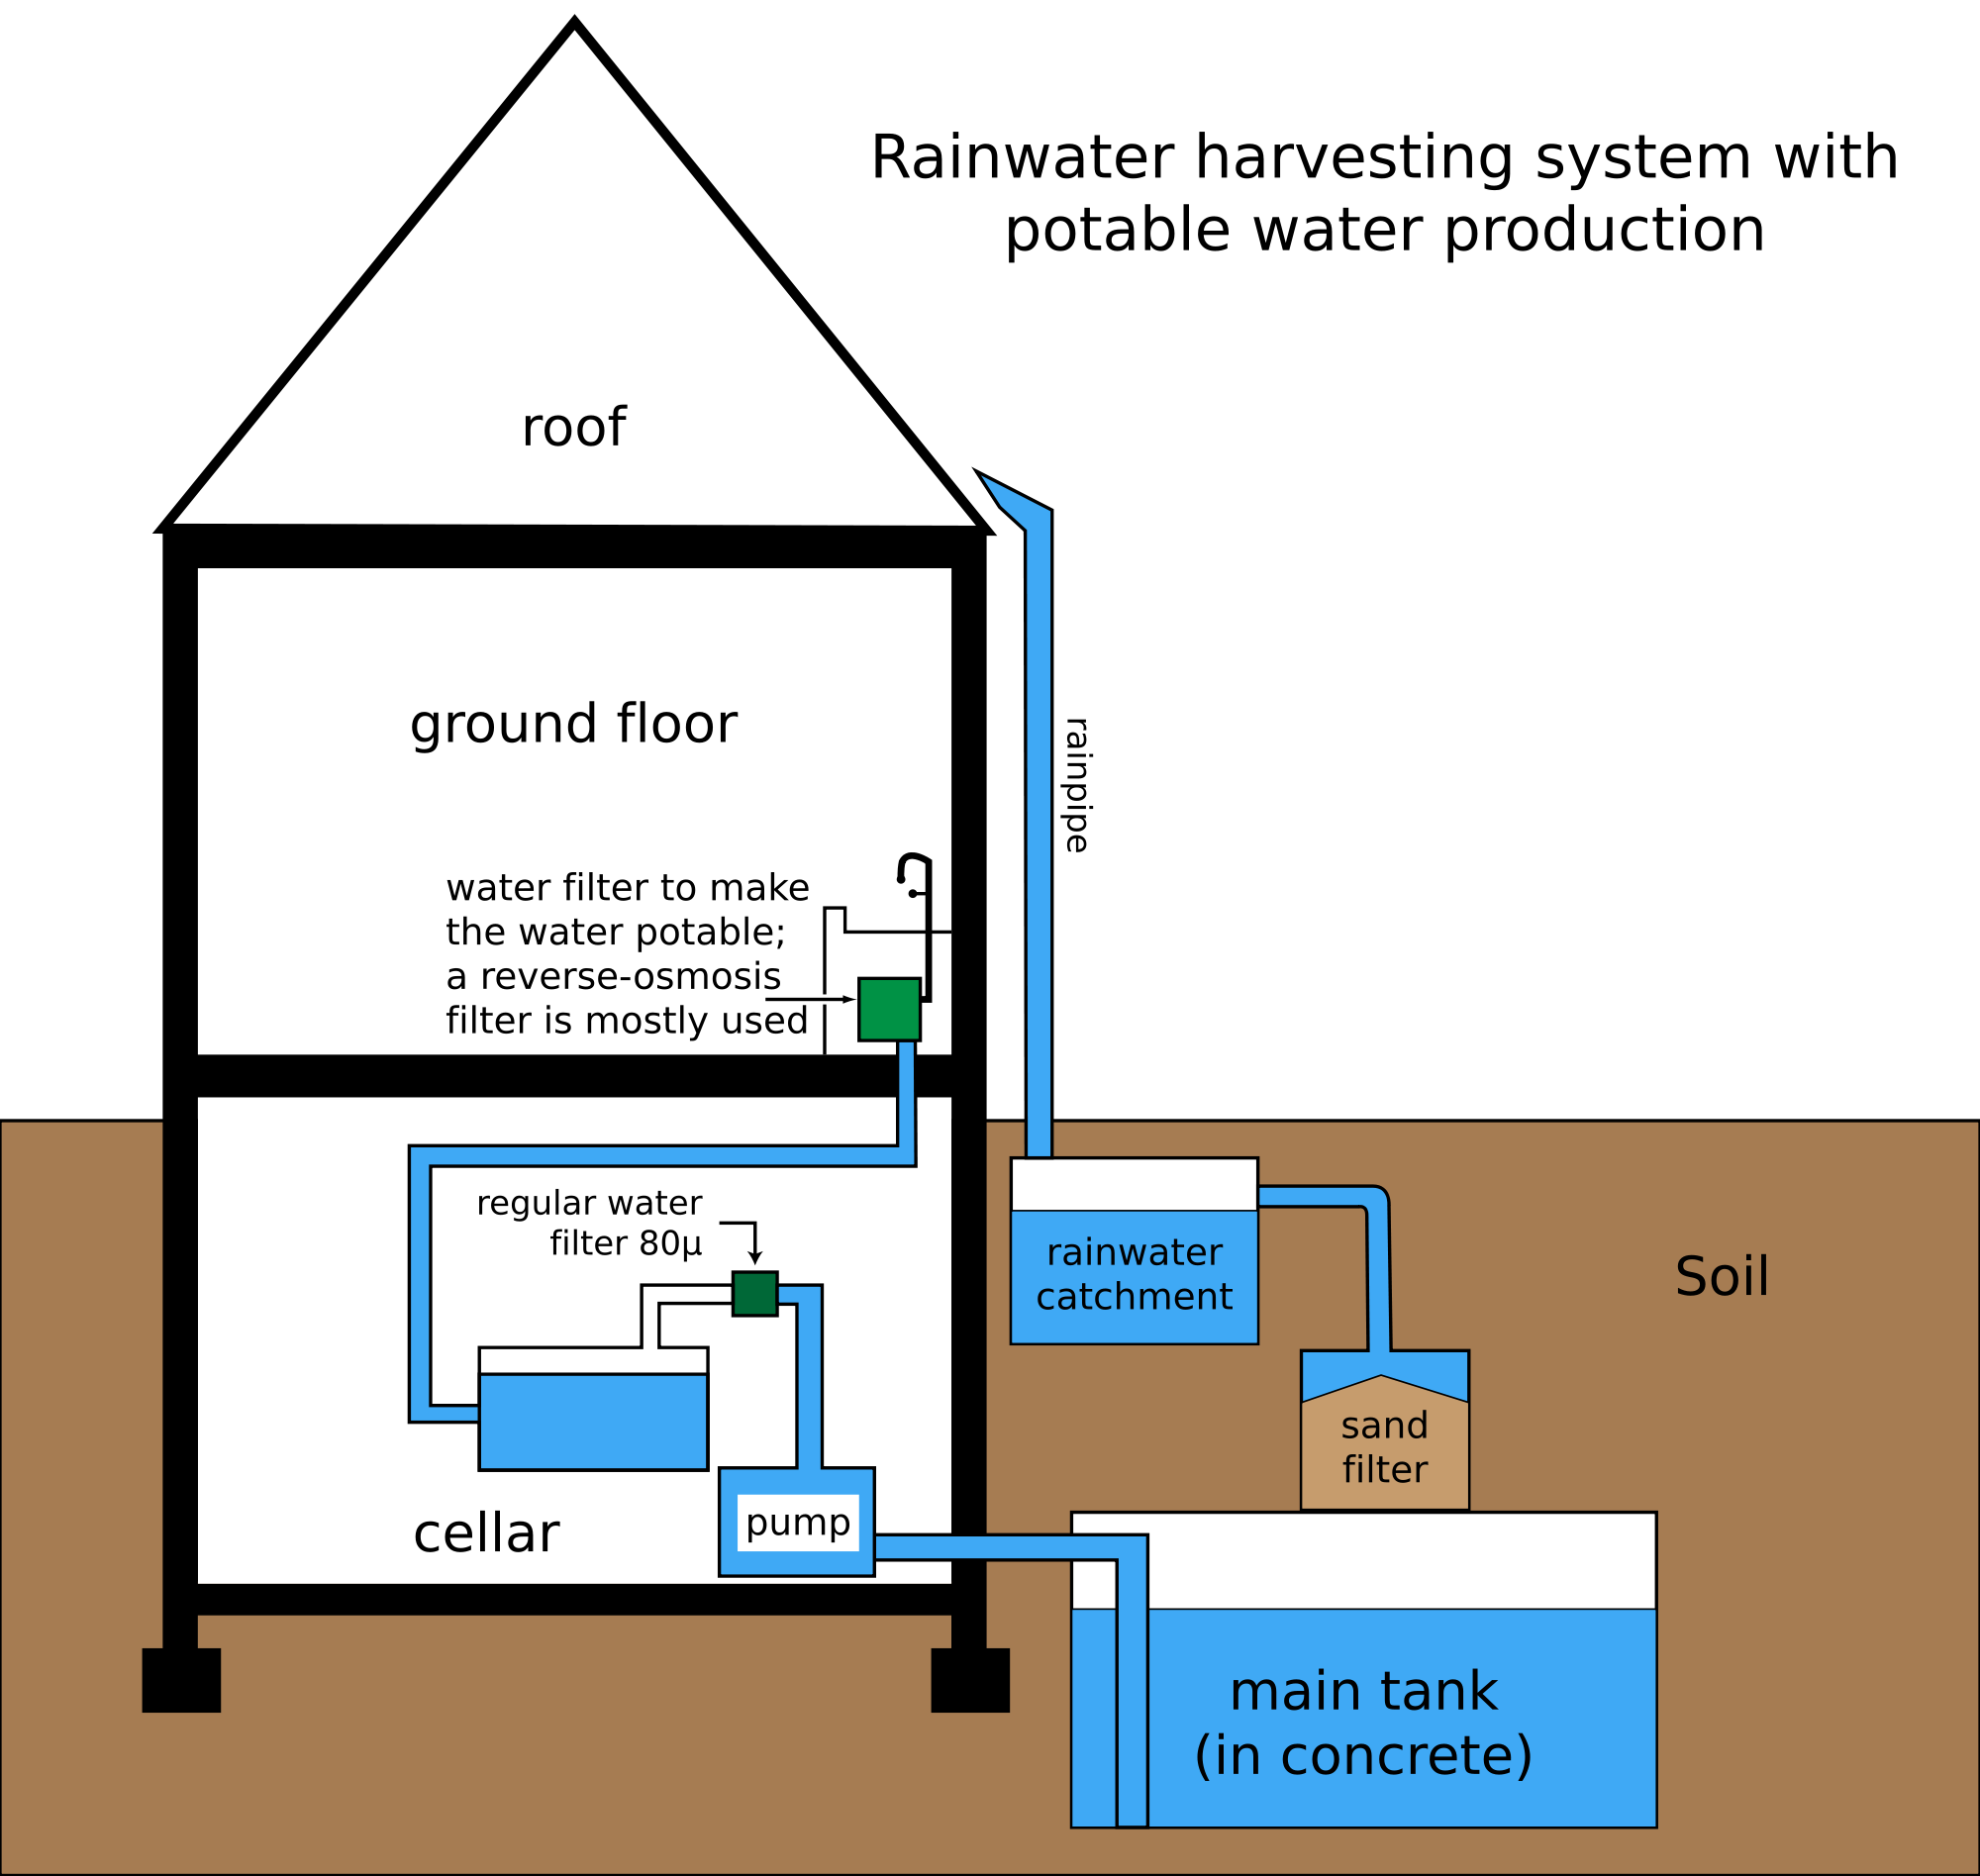 rainwater harvesting system. Image from Wikipedia